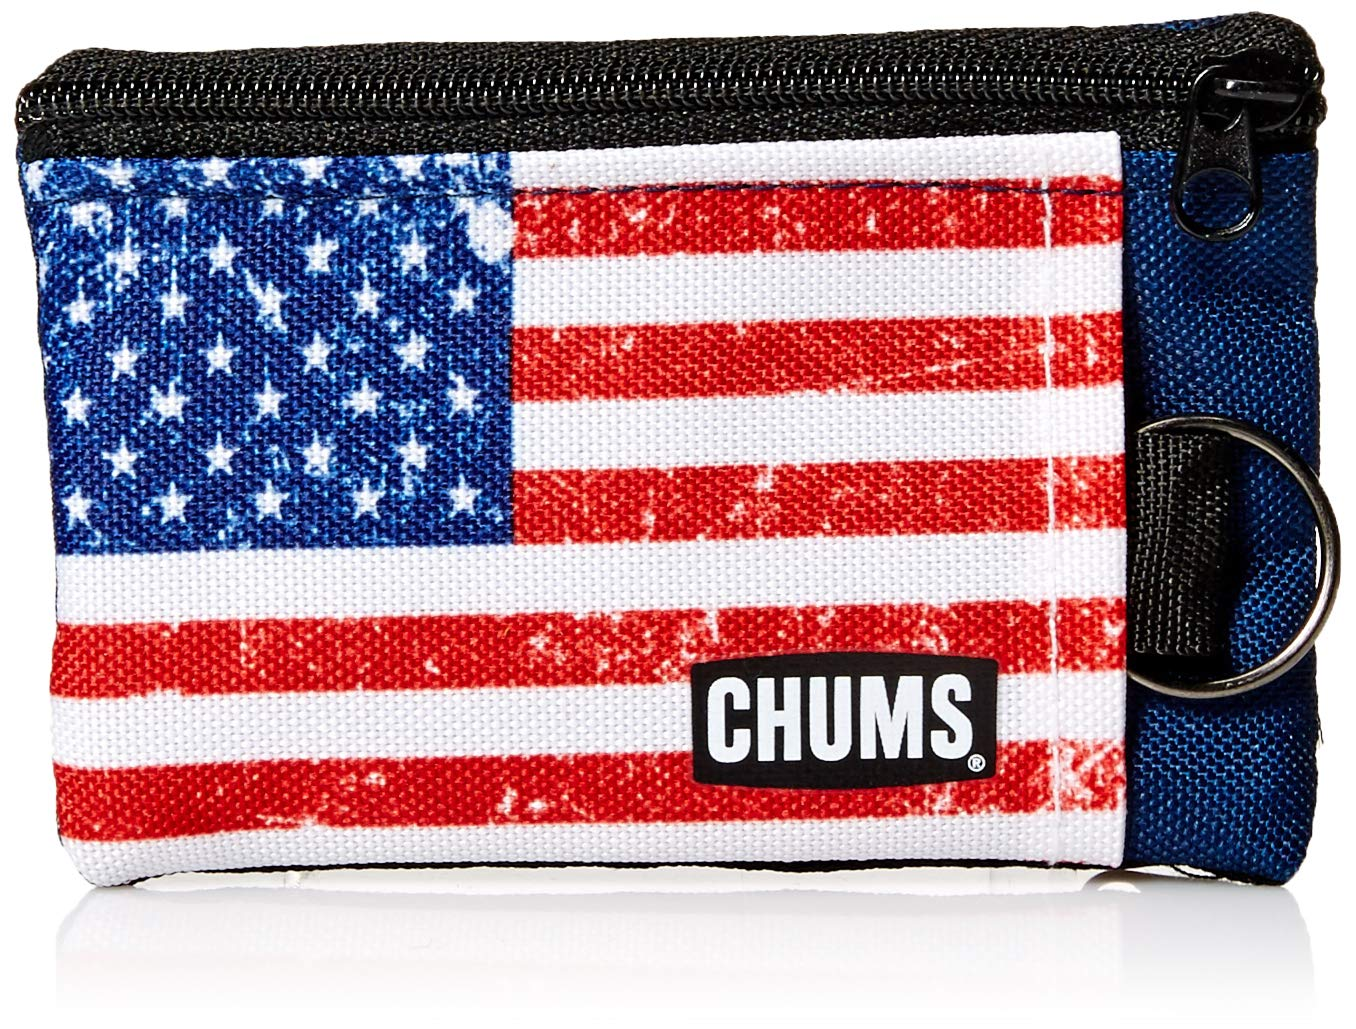 Chums Surfshort Wallet